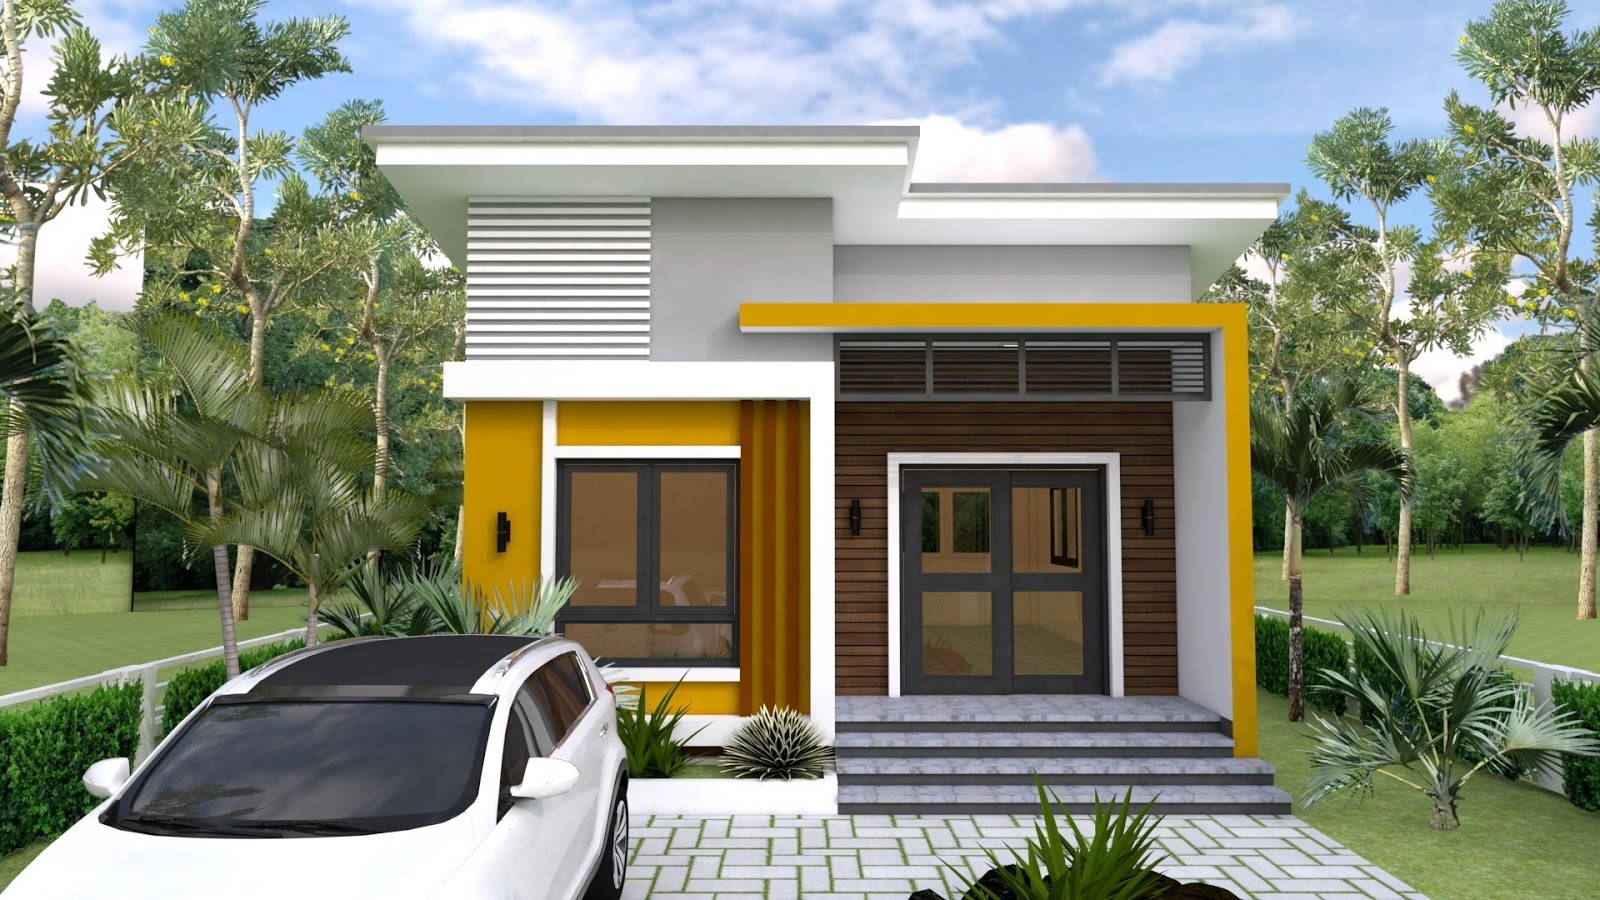 02 - Get 2 Bedroom Small House Plan Design Background